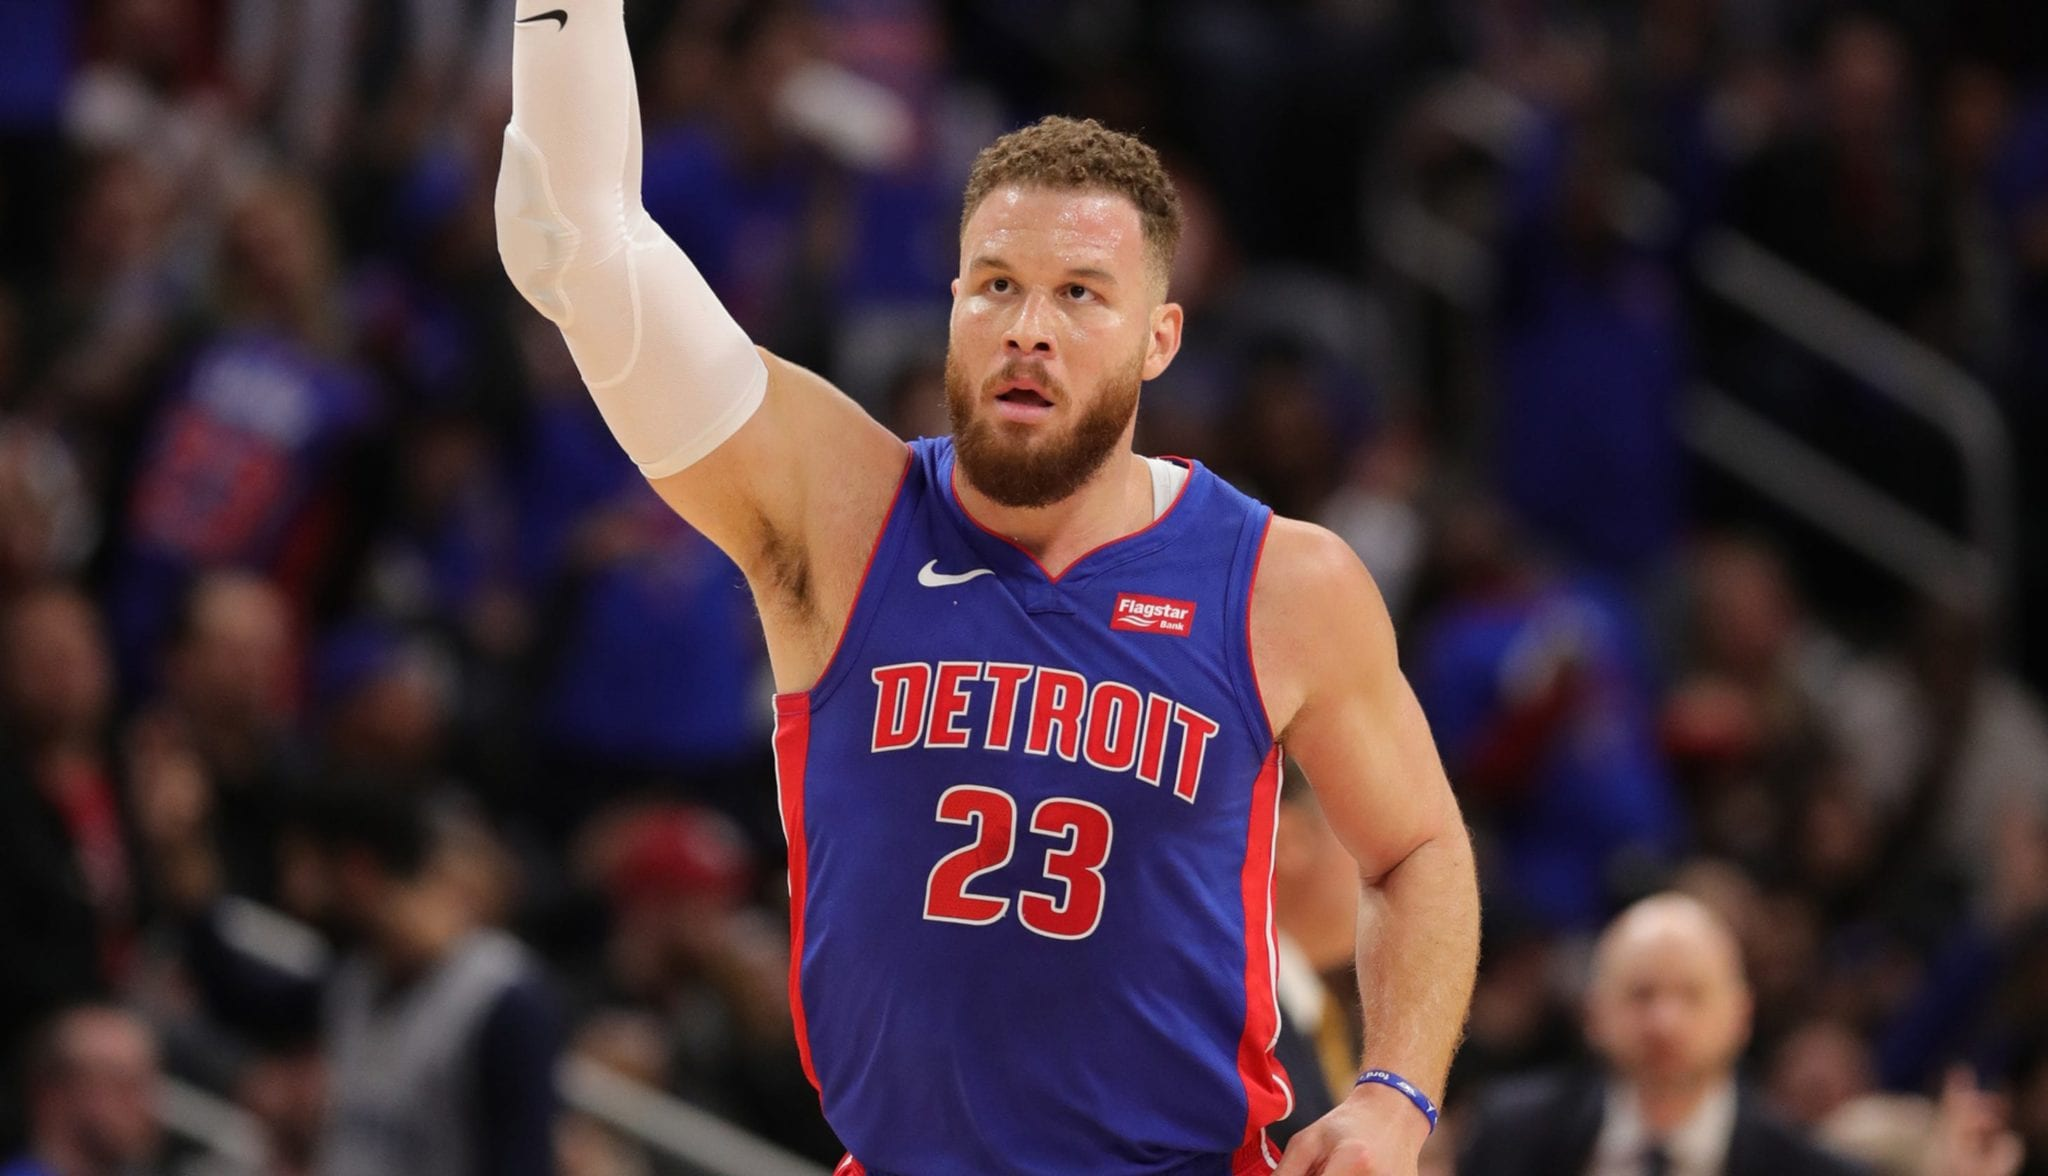 Blake Griffin as a member of the Pistons